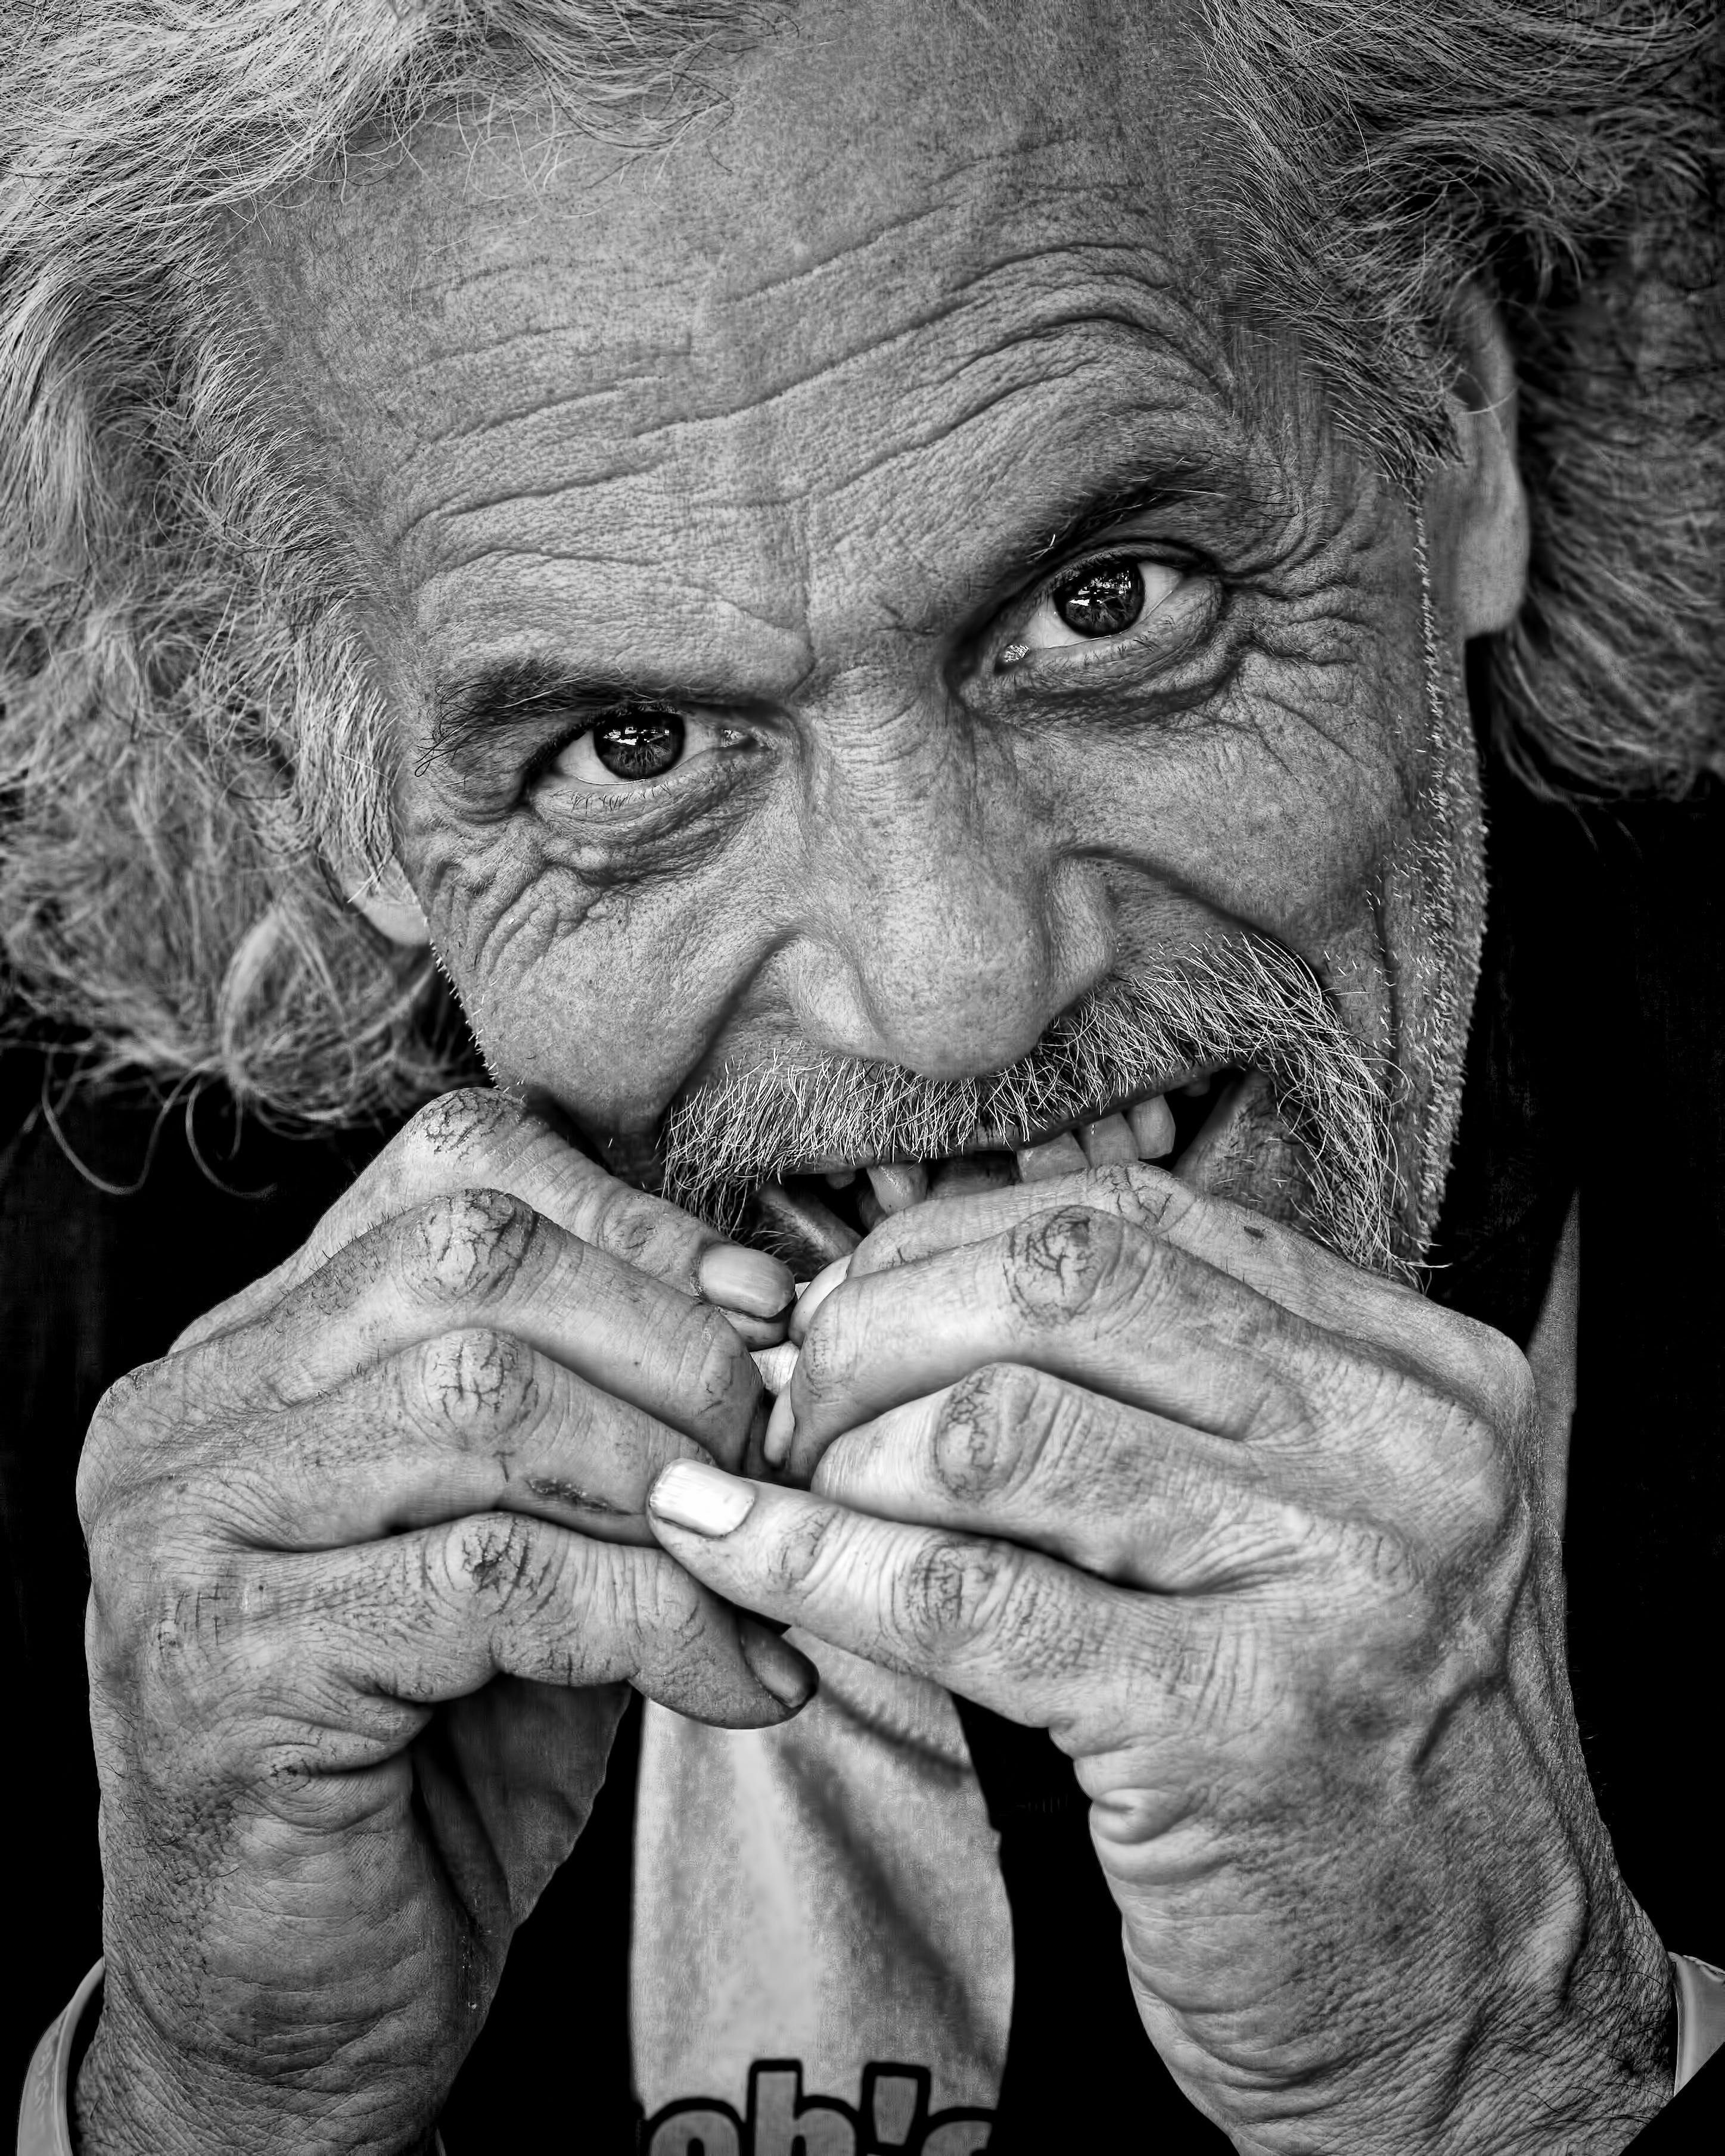 Grayscale Photography of Man Eating